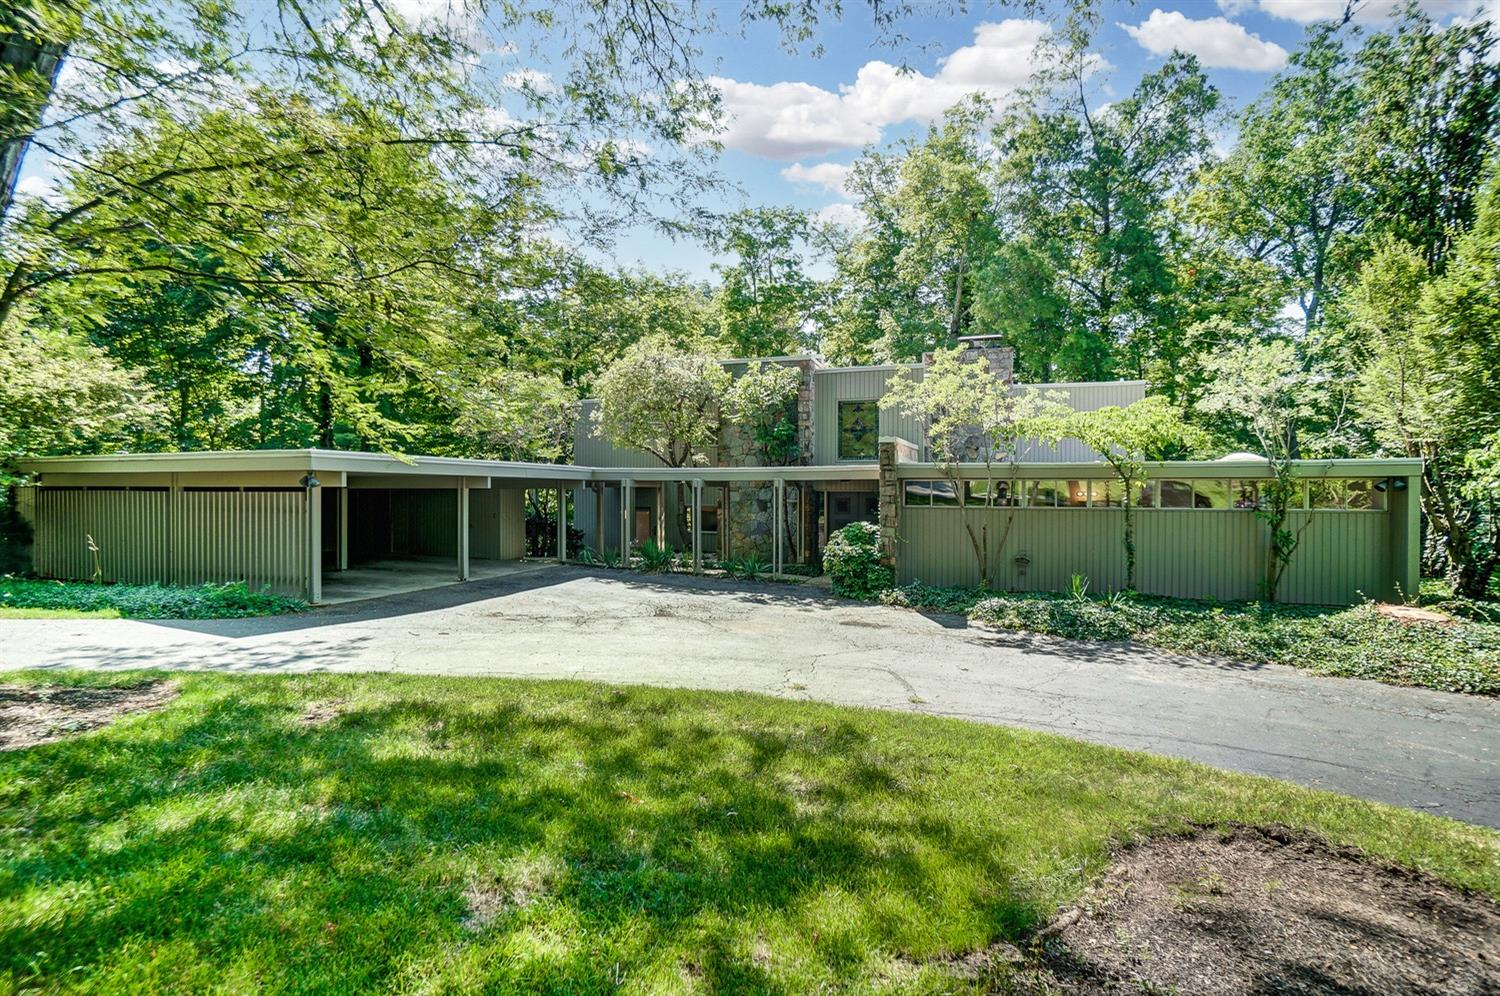 Examples of Mid-Century Modern Time Capsule homes are increasingly rare these days. This single owner 1962 home designed by architect, James Hall Jones (who also designed the home next door) has had very few changes/updates in its 59 years. Whether you love living in a vintage original or would like to update your way (and not have re-do someone else's changes), this stunning homes has you covered.